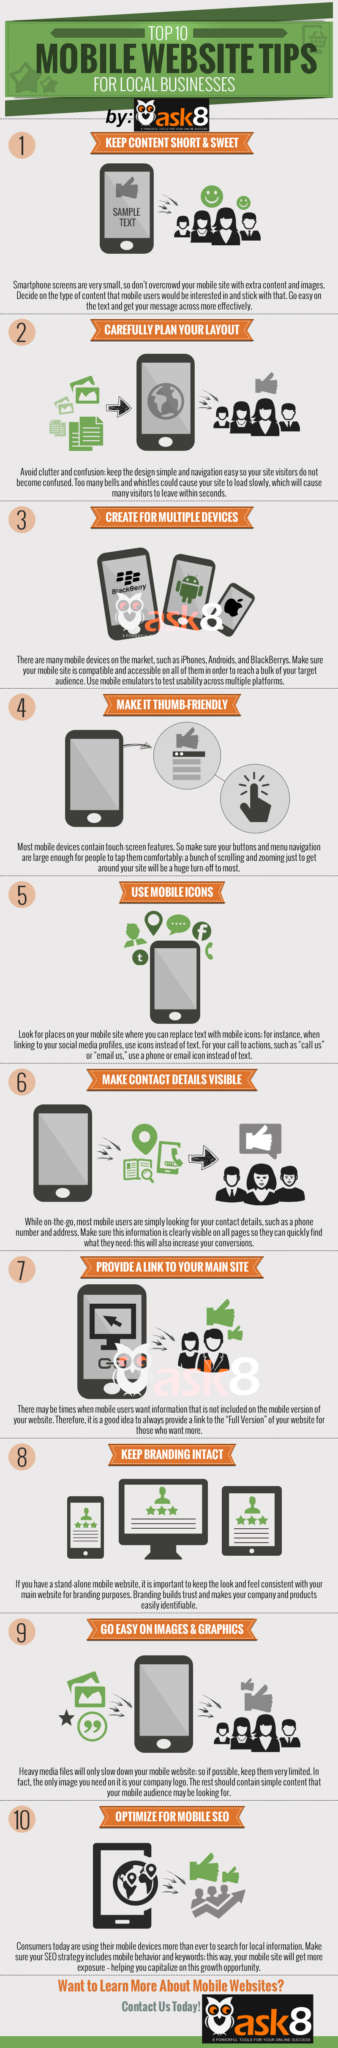 mobile-website-tips